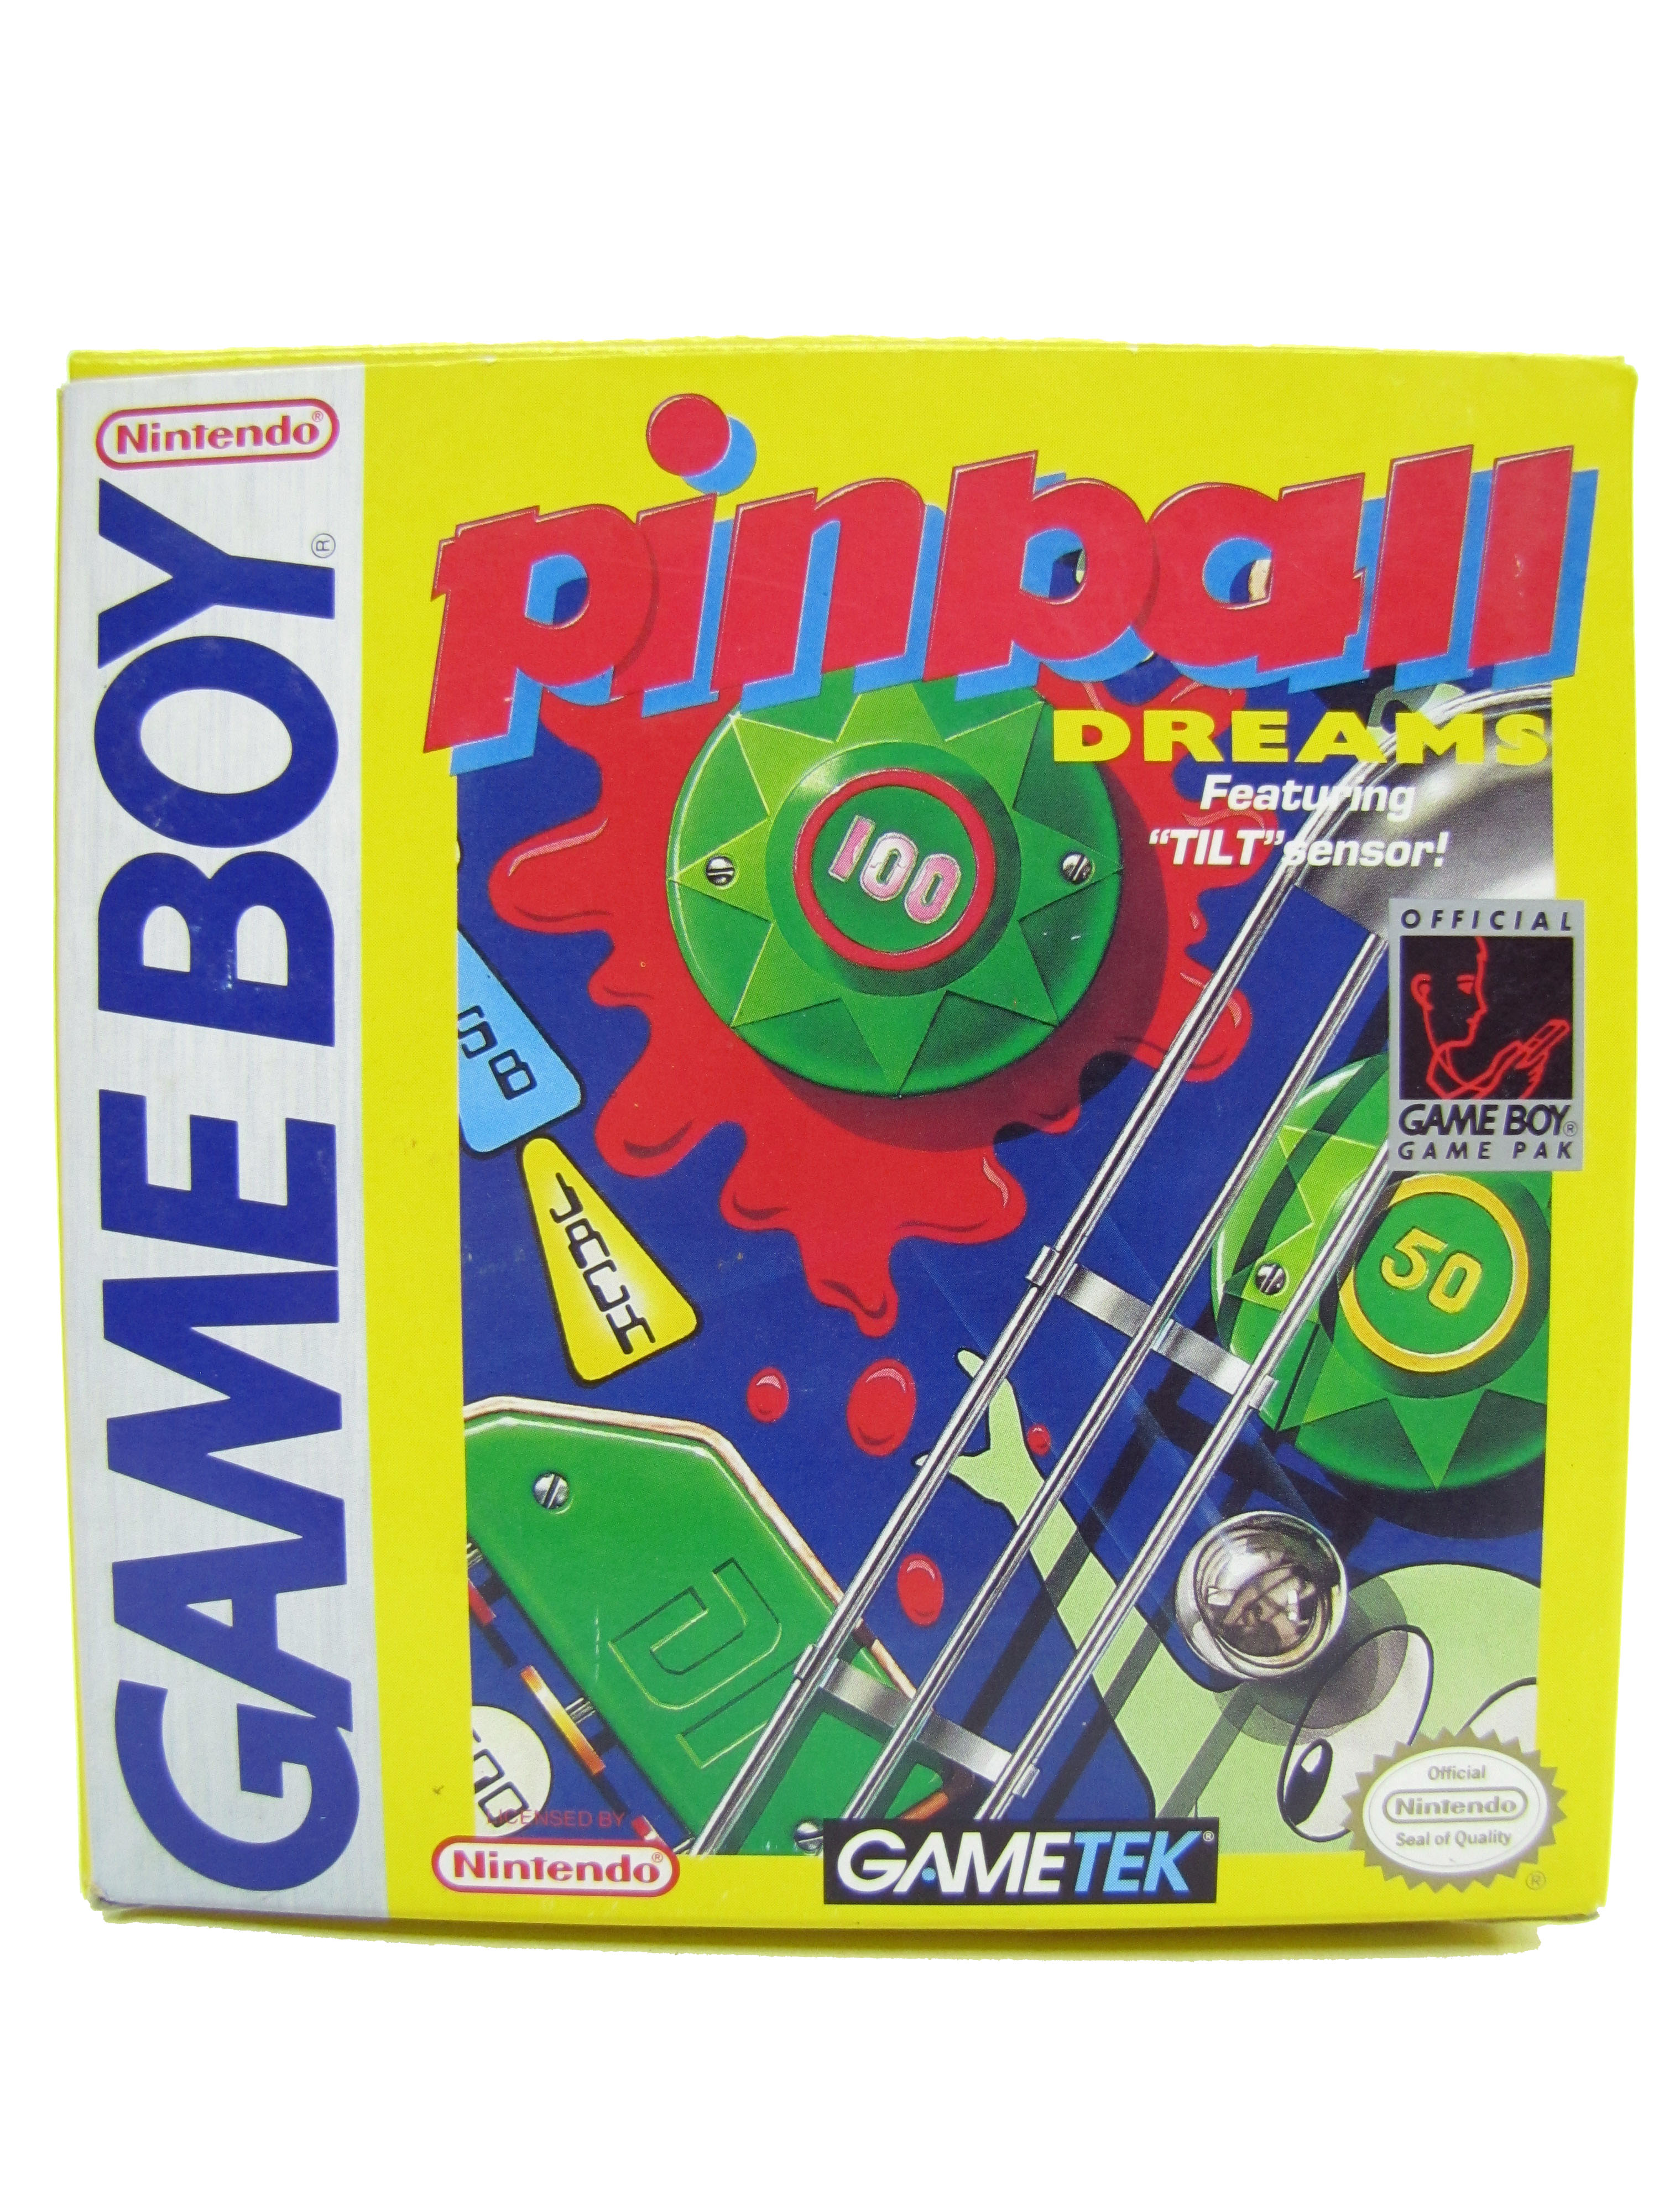 Game Boy Pinball Dreams Complete in Box - 1992